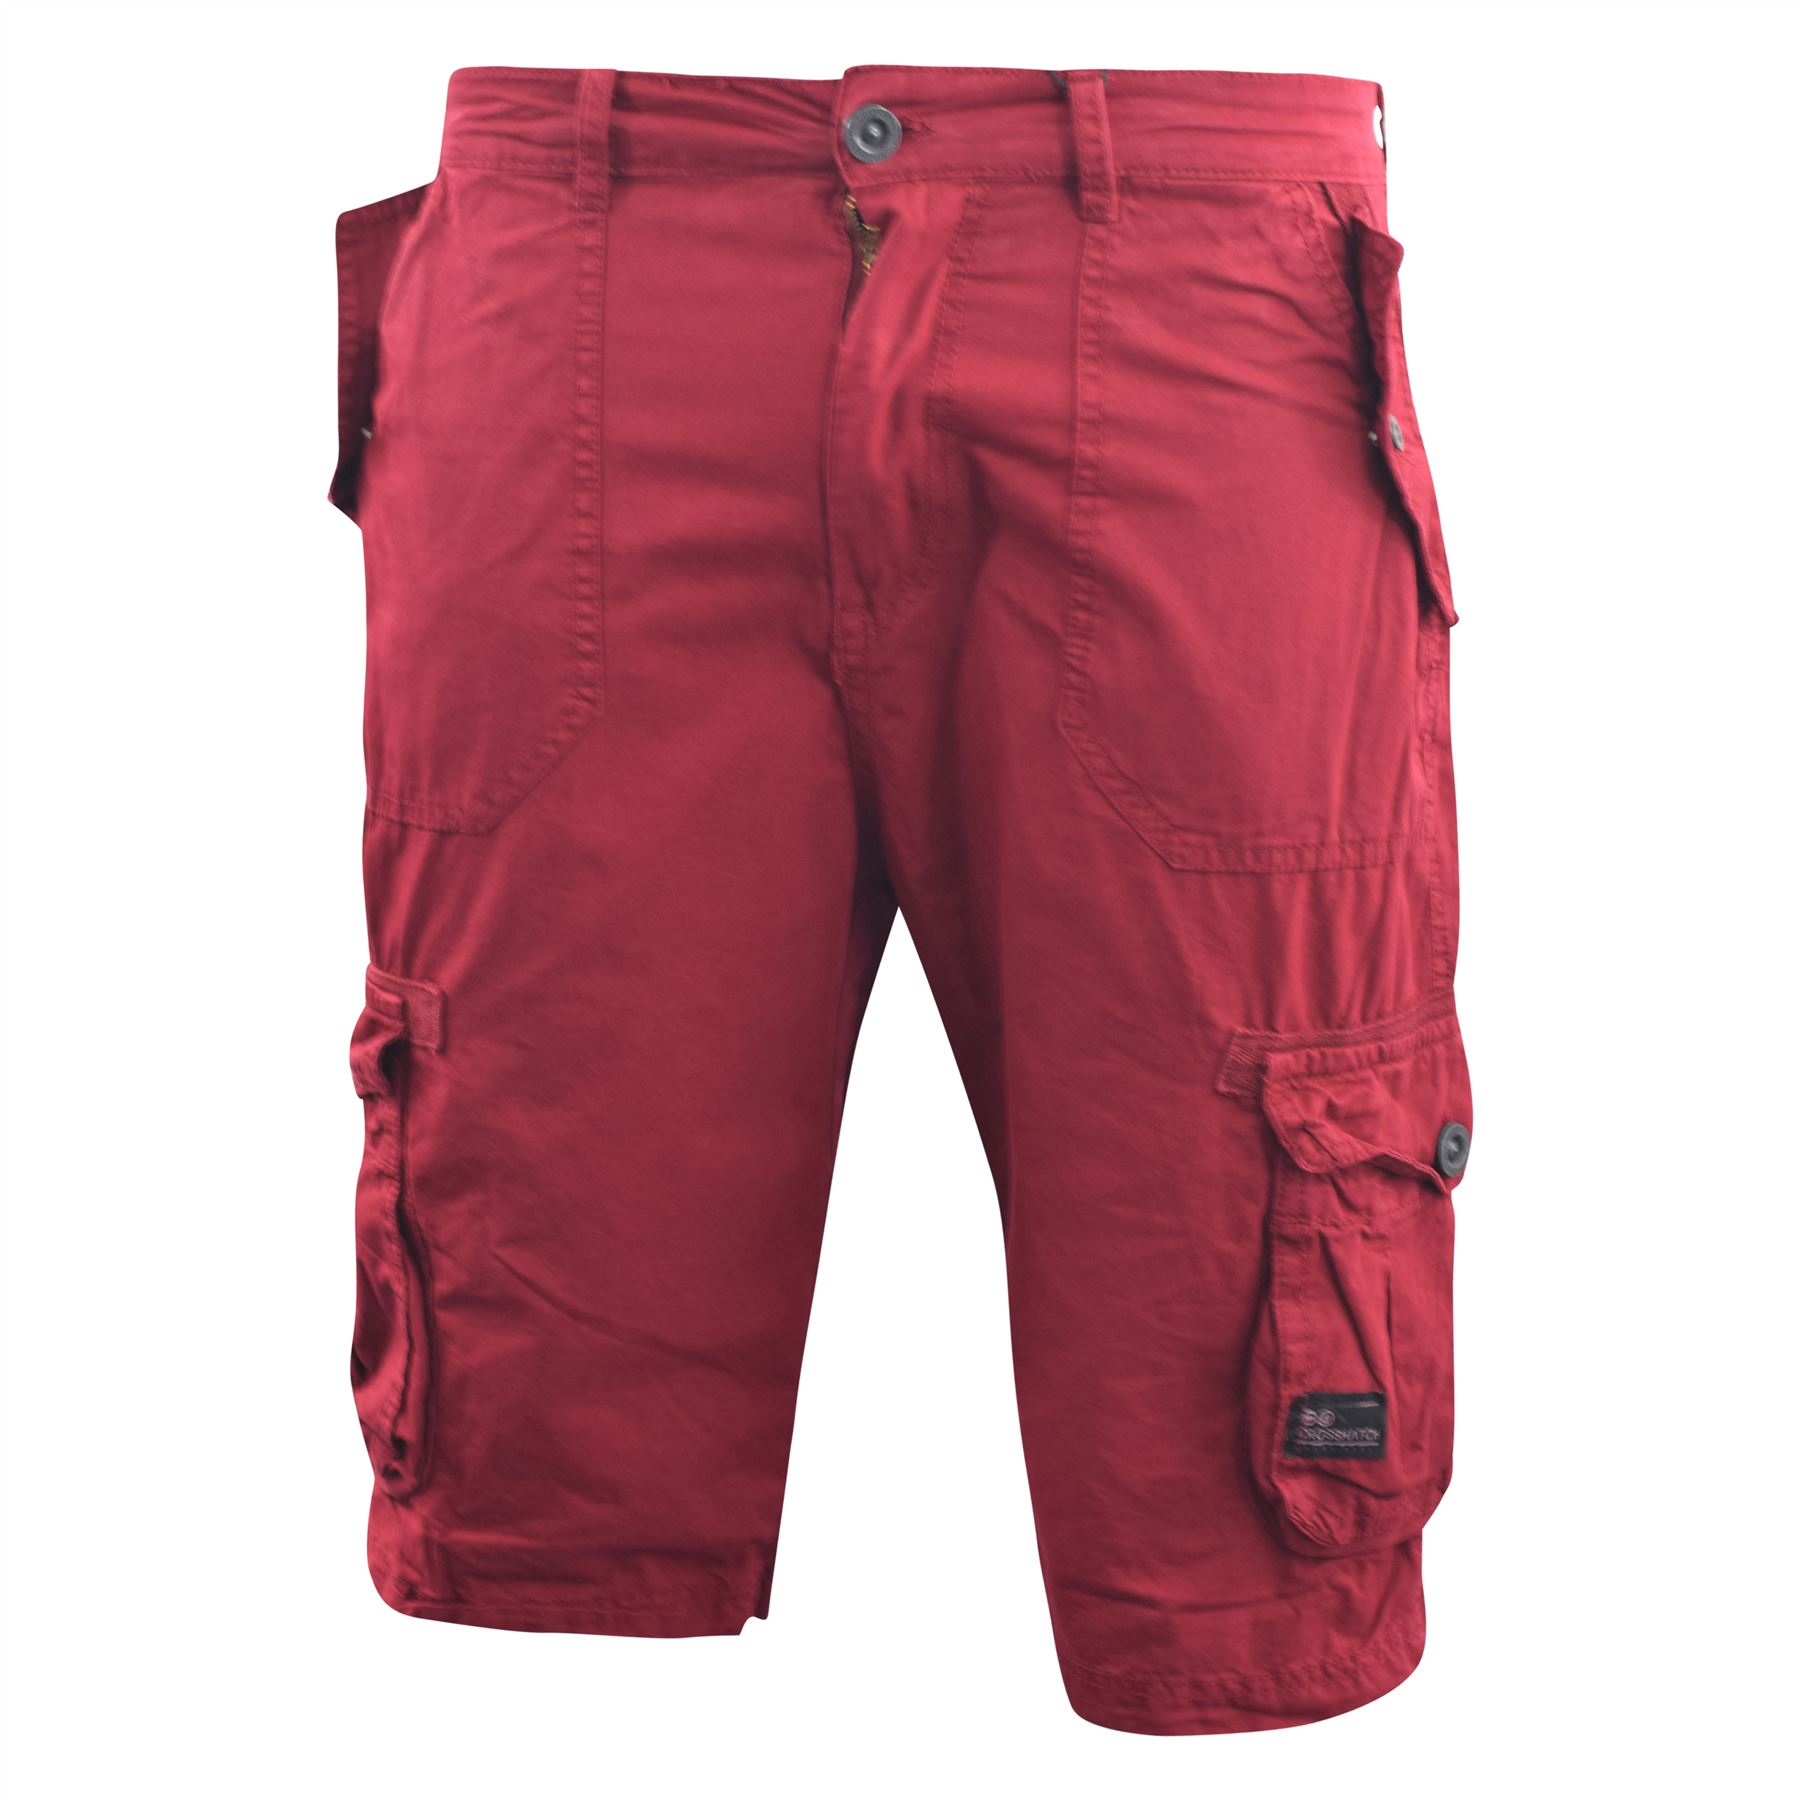 f56504c4a9 Mens Crosshatch Chinos Cargo Shorts Jeans Combat 3/4 Knee Length ...